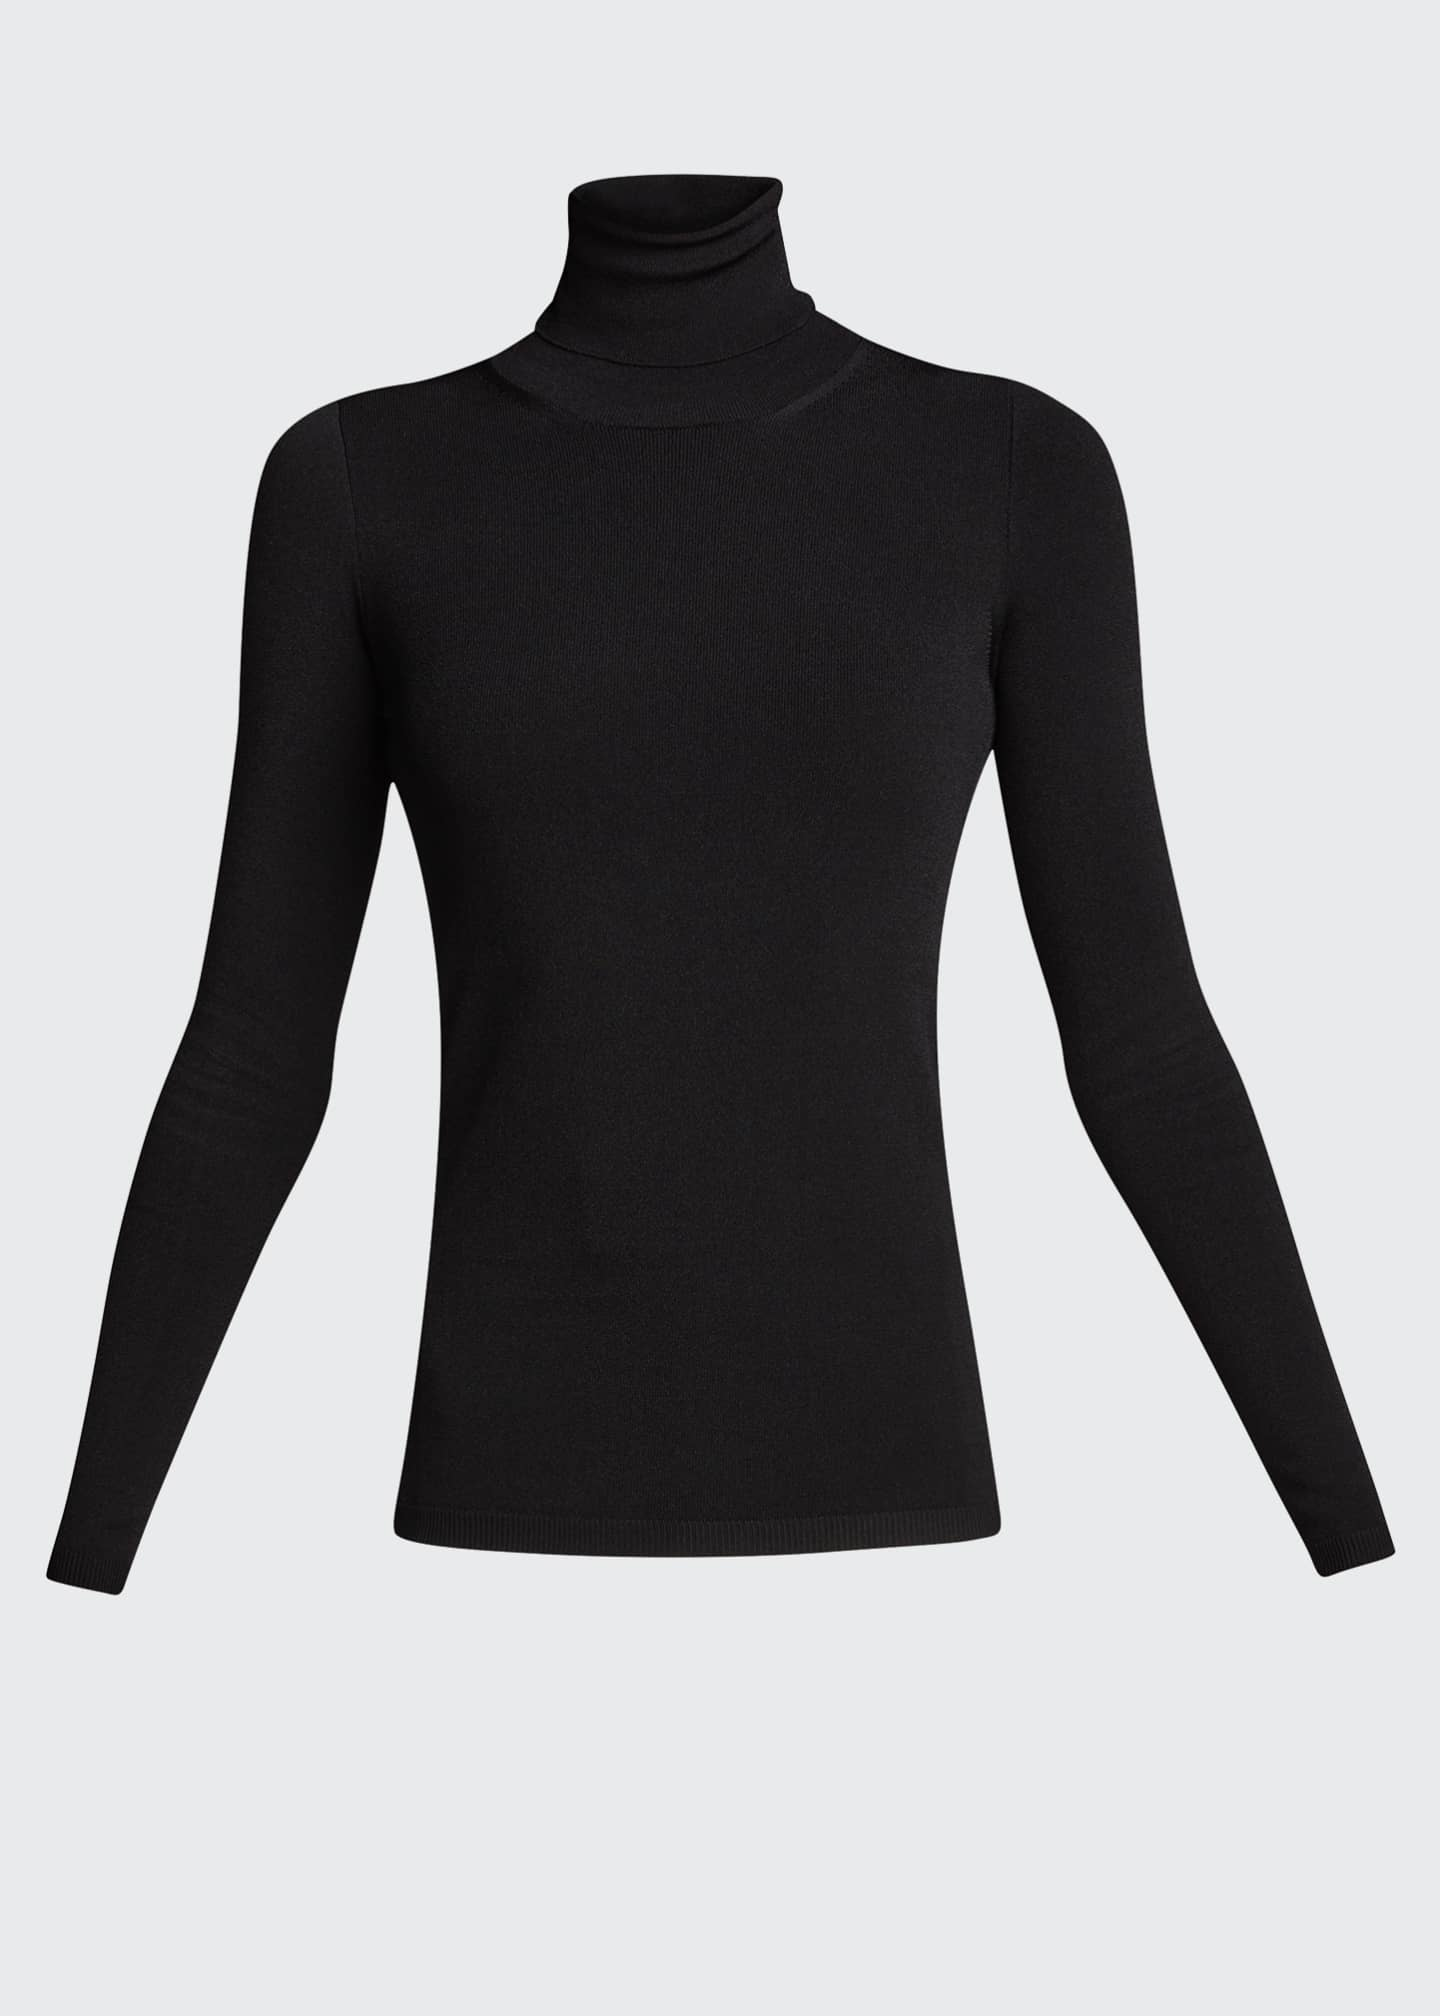 Image 5 of 5: Compact Knit Turtleneck Sweater